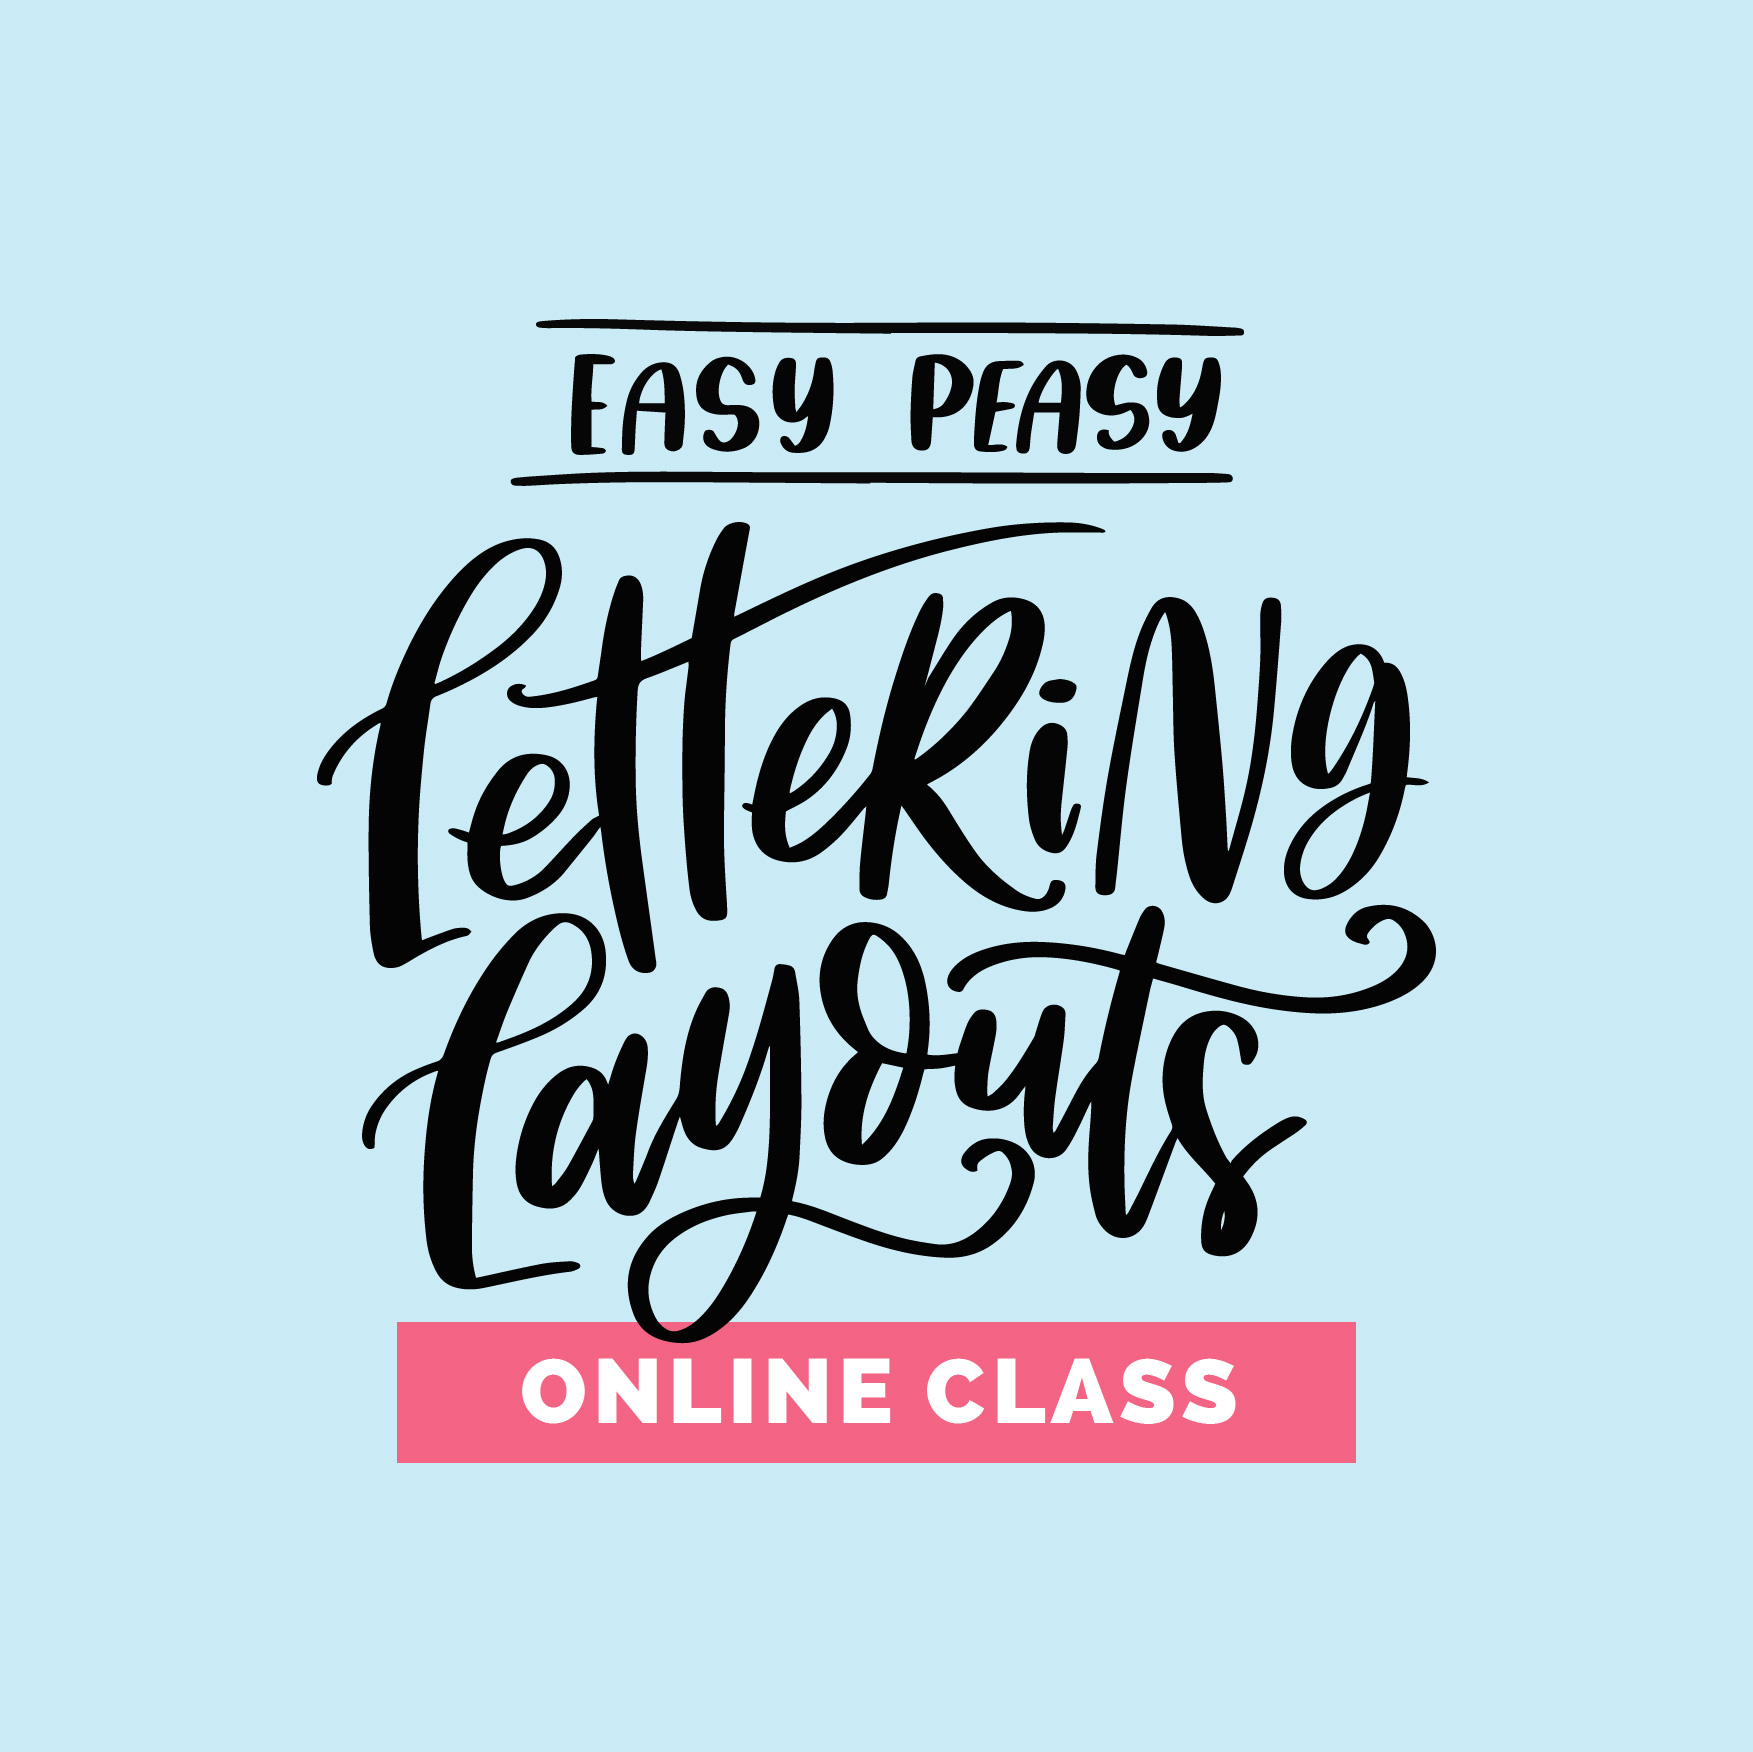 Easy Peasy Lettering Layouts beginners online class